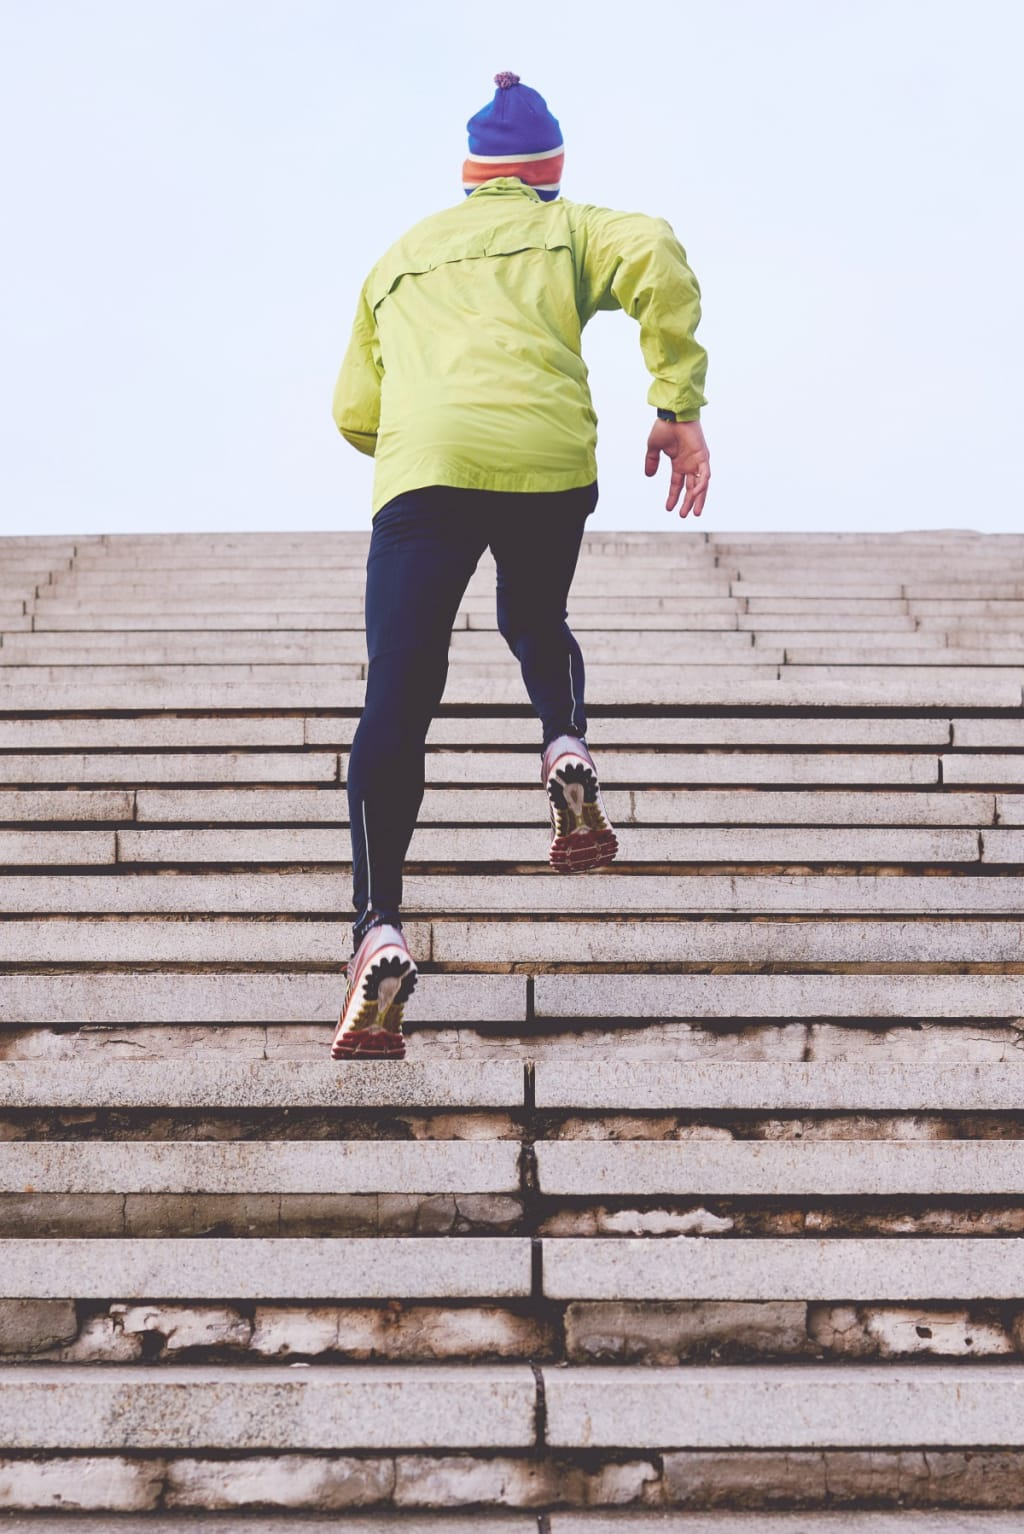 How to Run Away From Decay With 10,000 Steps a Day